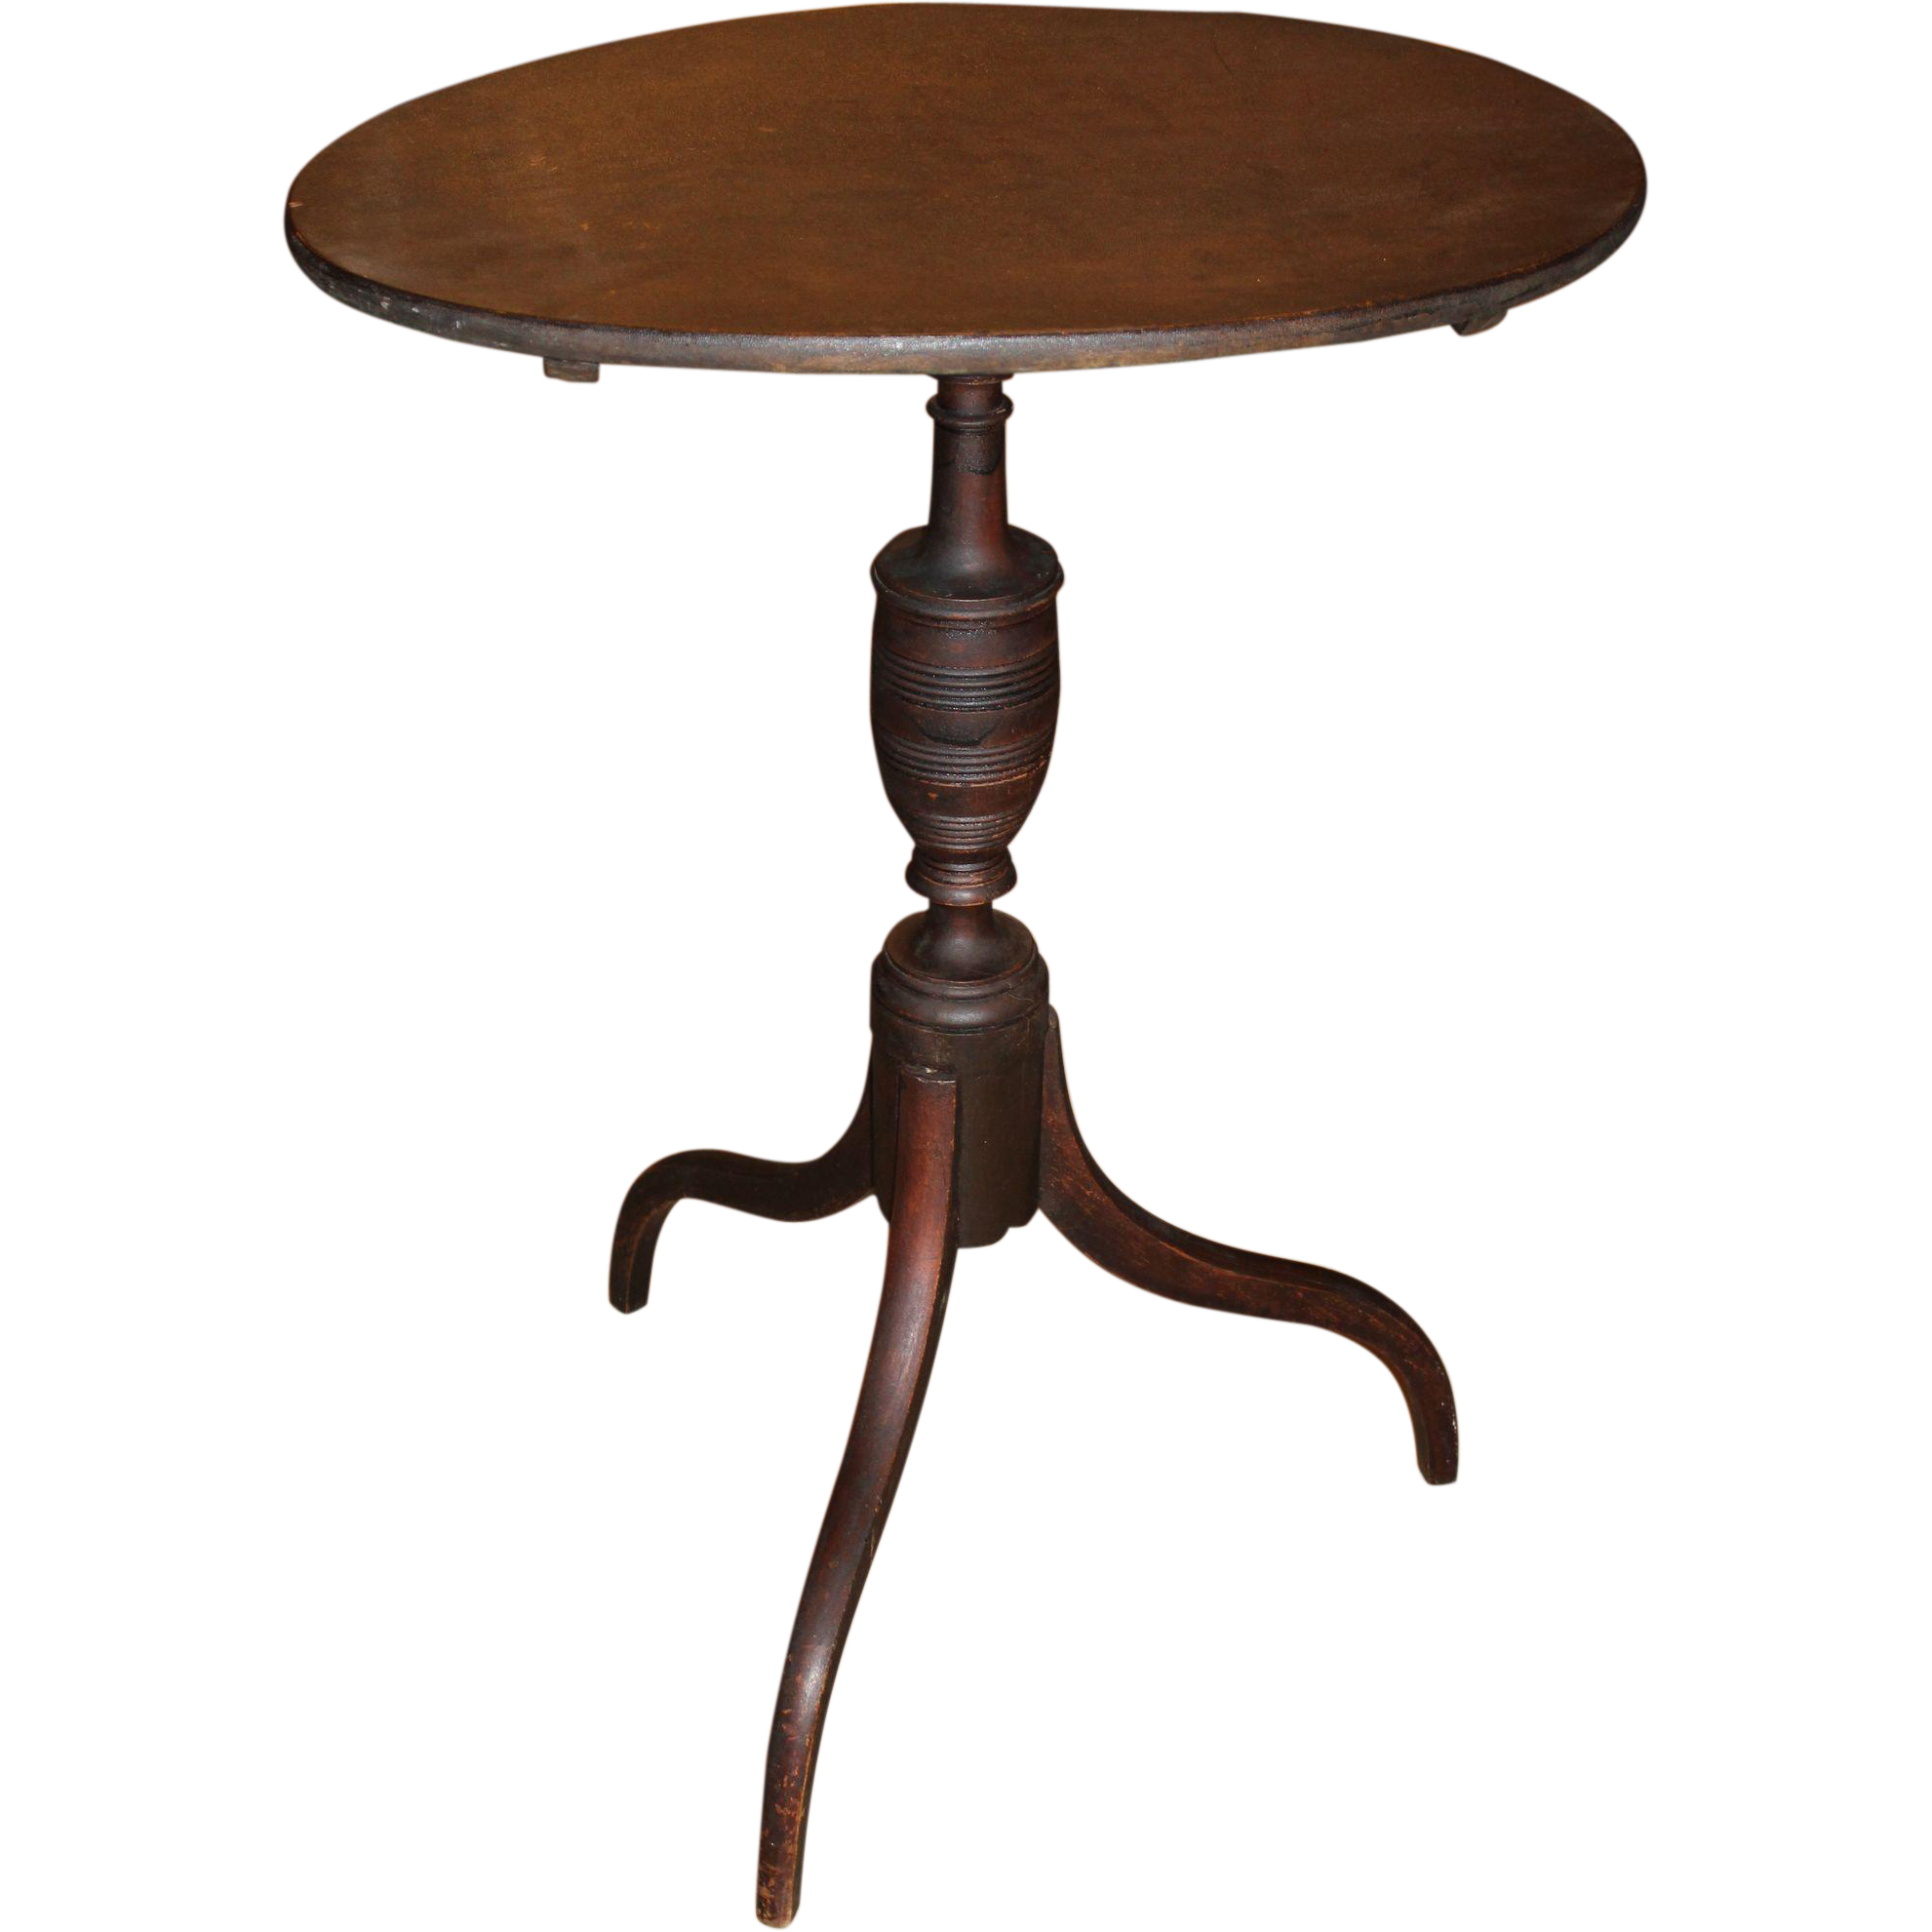 Portsmouth NH Oval Top Candle Stand in Original Surface, circa 1790-1820